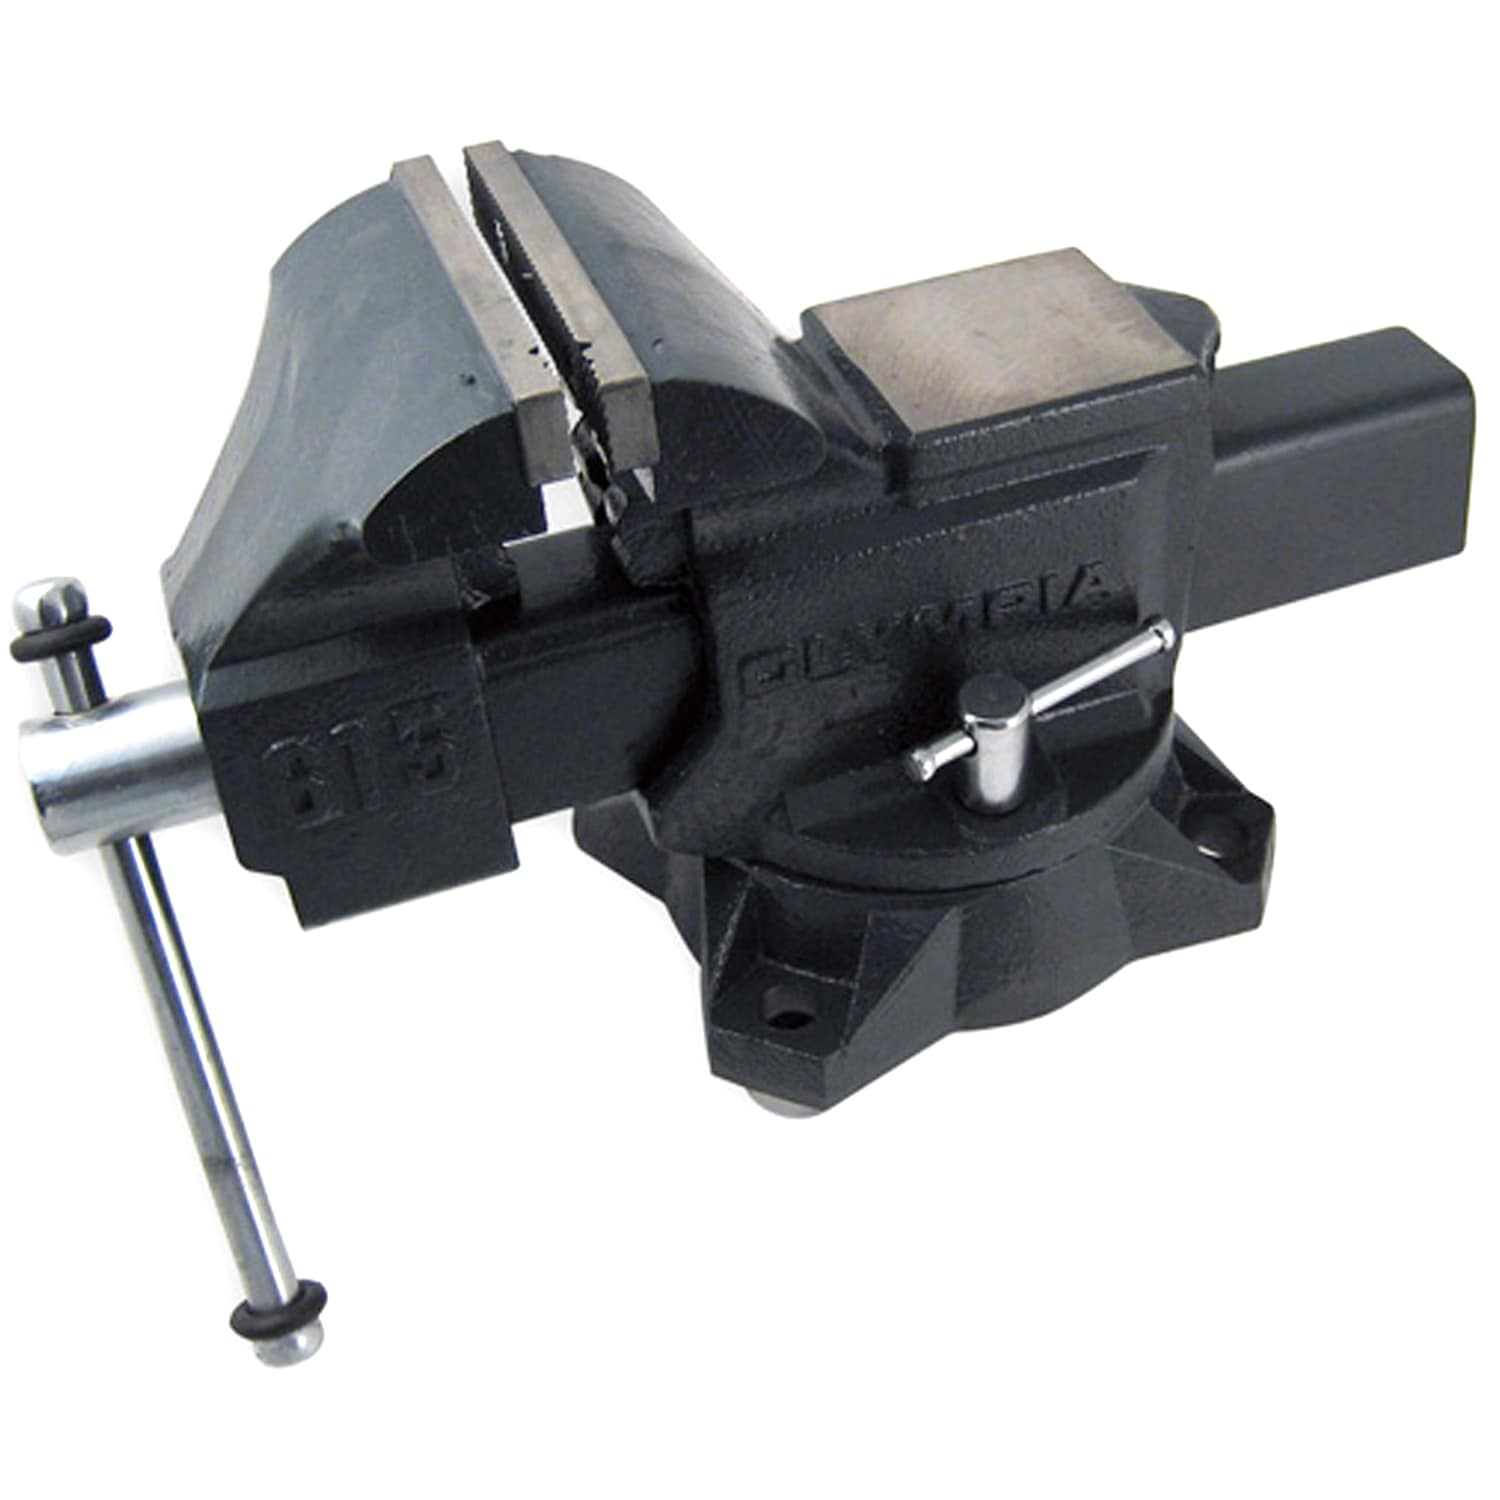 Replacement vise jaws | Compare Prices at Nextag